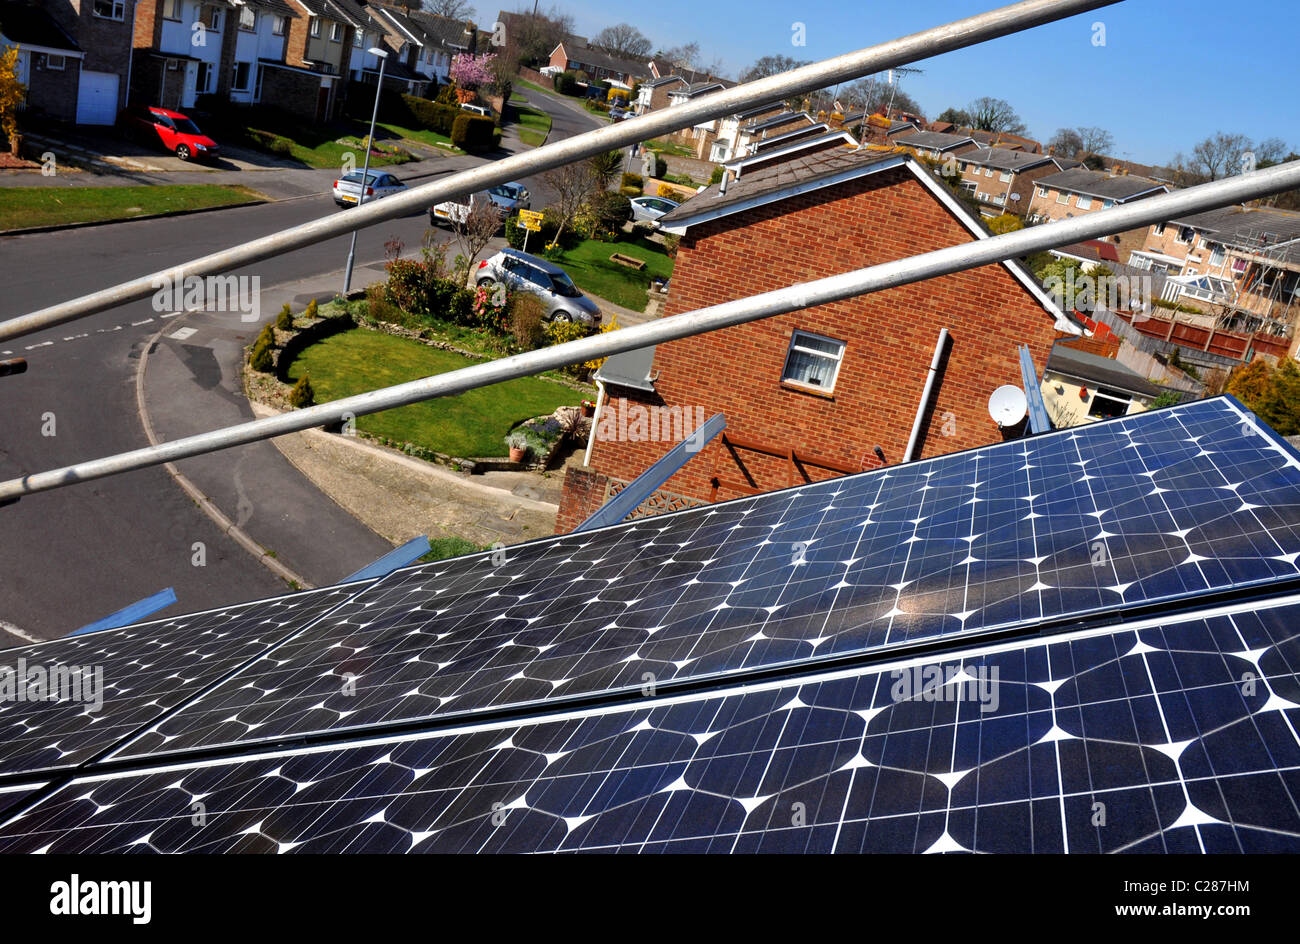 Solar panels installed on a house roof, Britain, UK - Stock Image